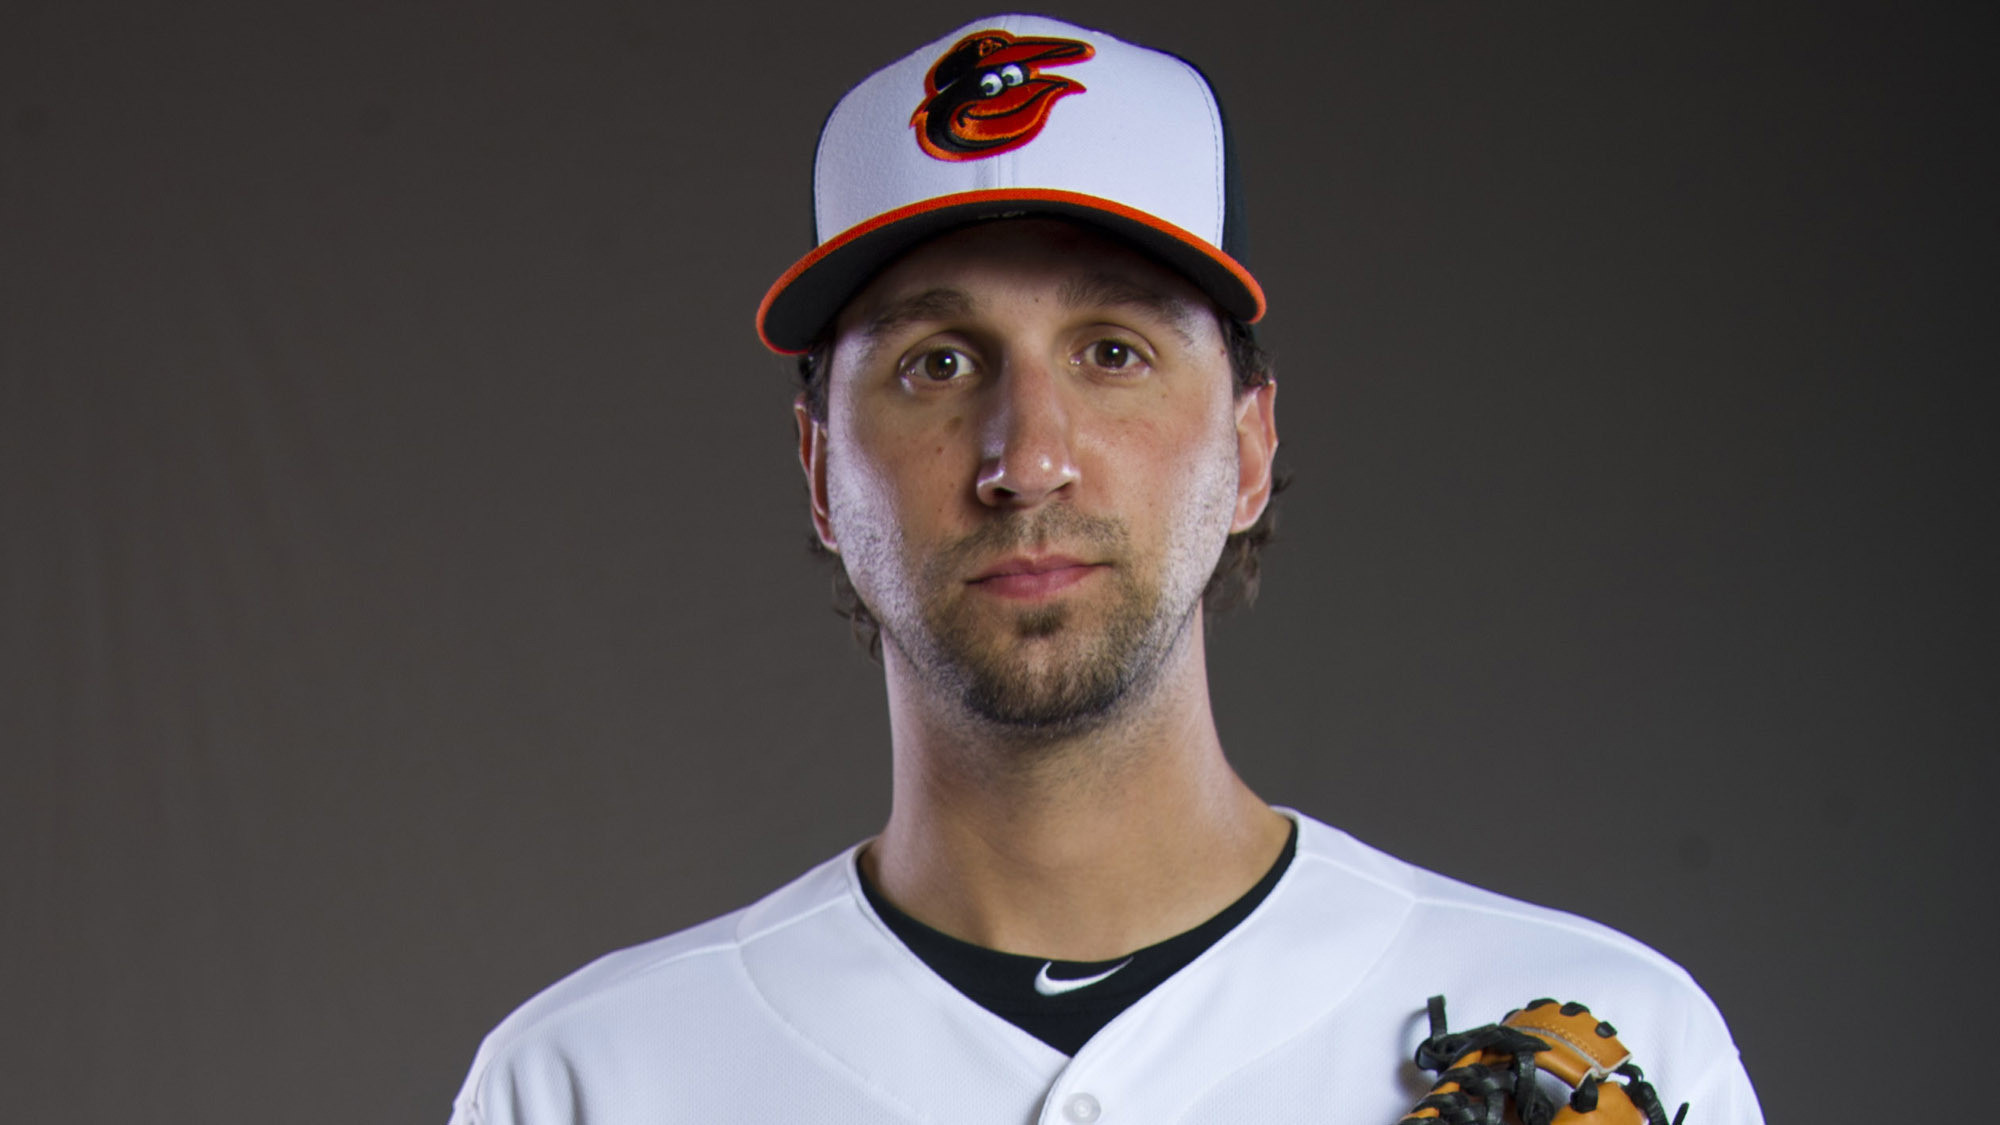 Chaz Roe Pitcher Chaz Roe makes sparkling debut with Orioles